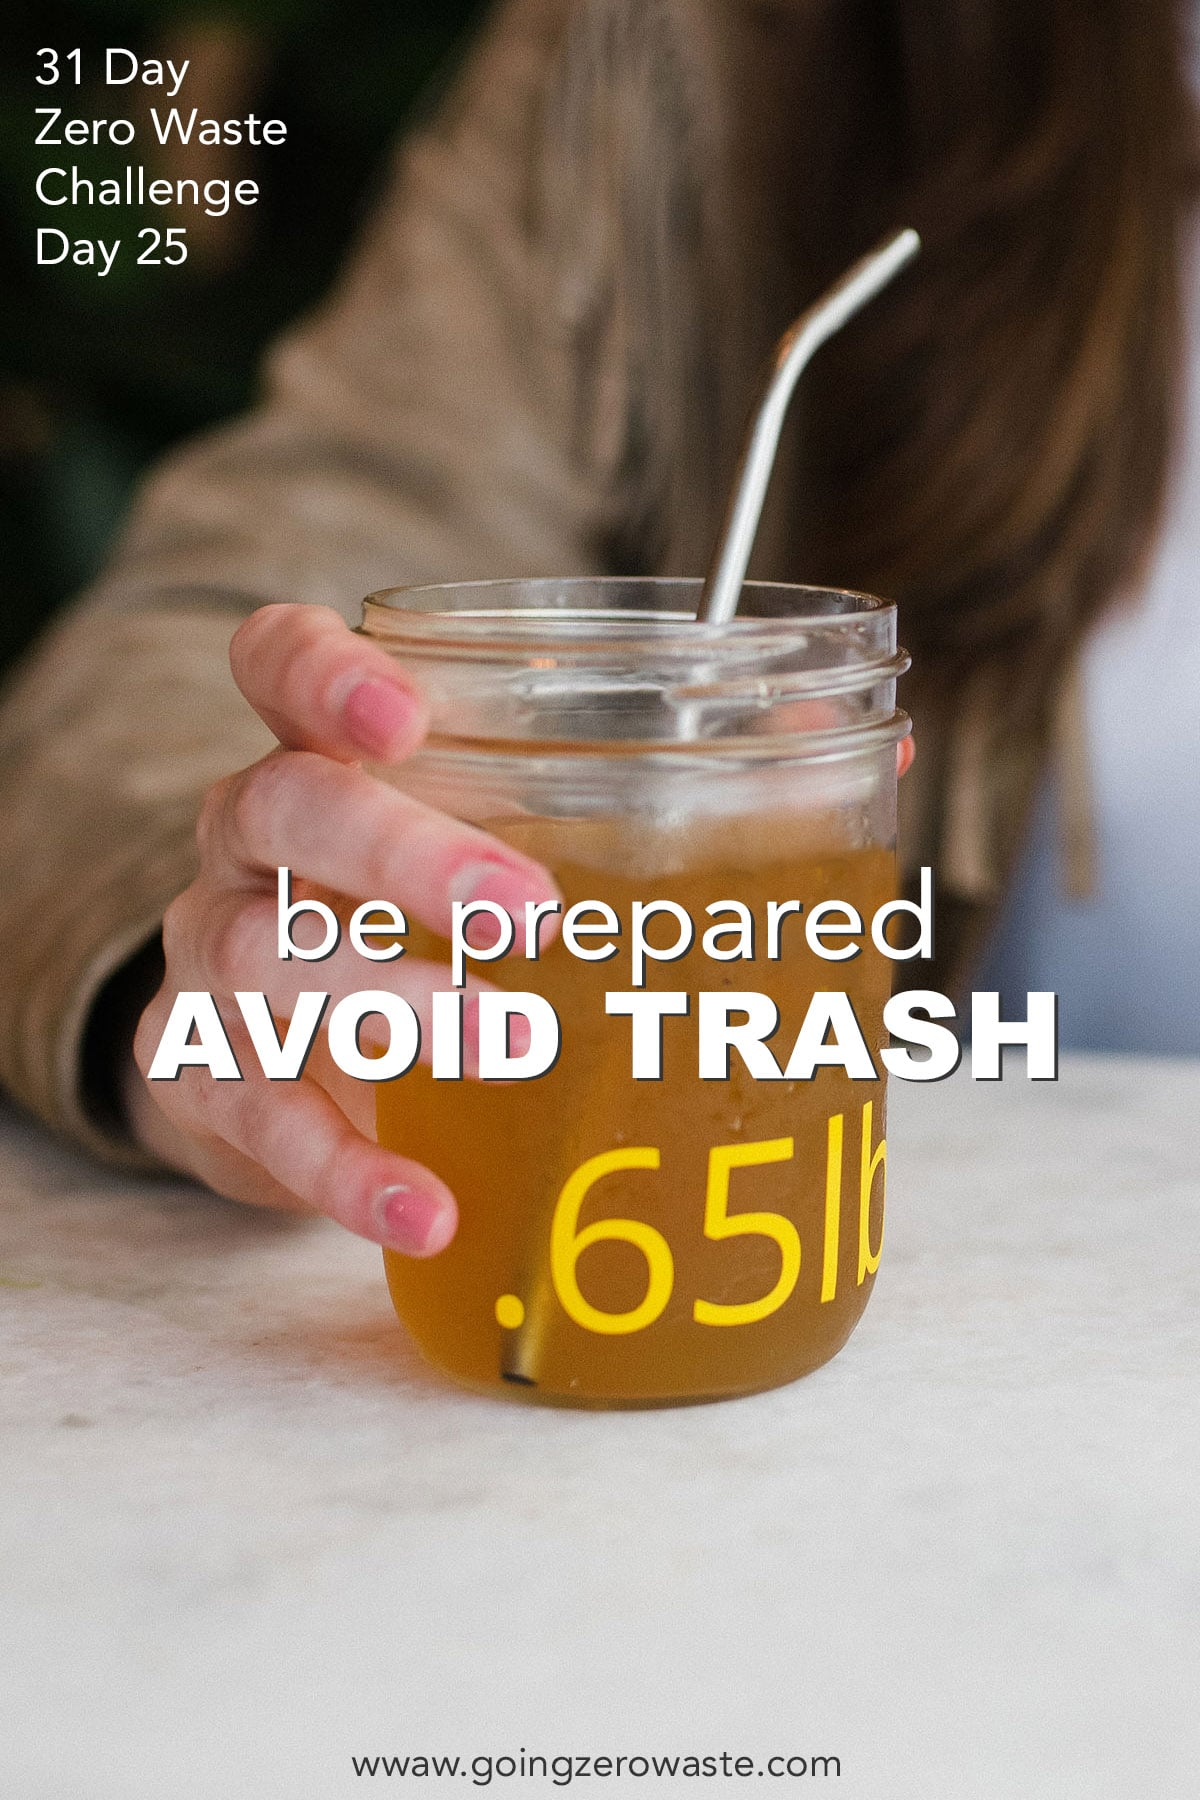 Be Prepared and Avoid Trash - Day 25 of the Zero Waste Challenge